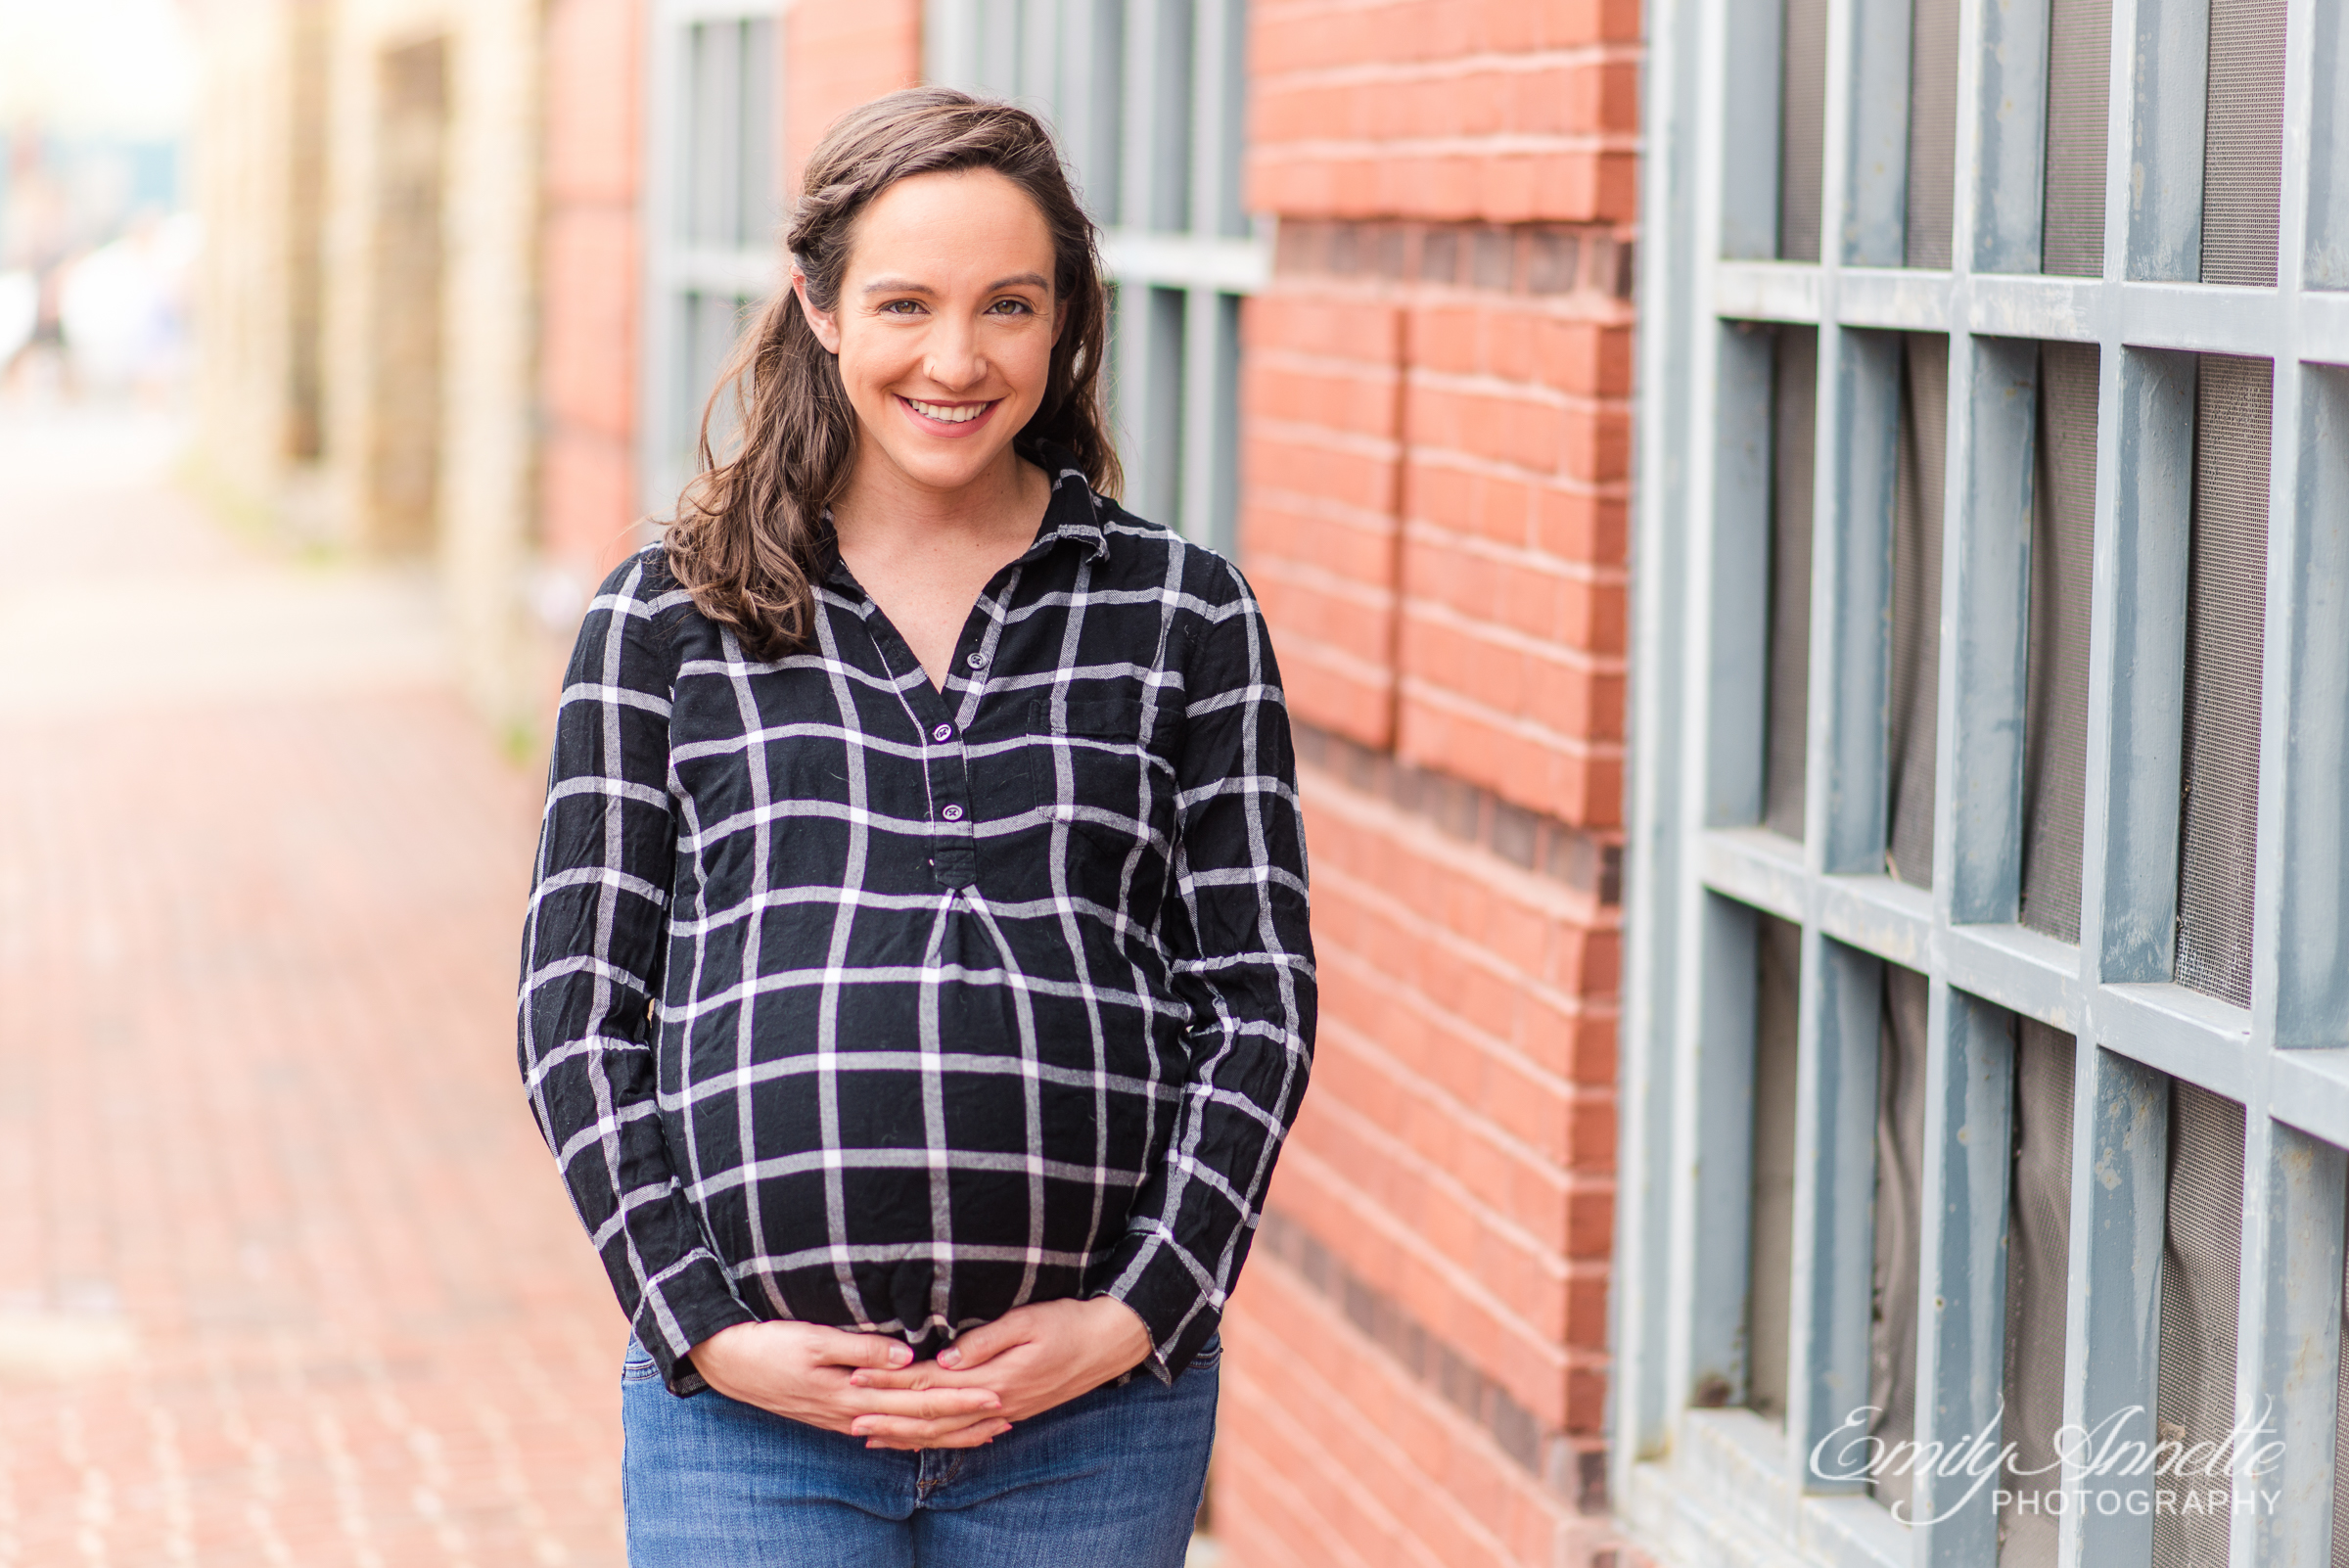 A pregnant woman poses for maternity photos in Old Town Alexandria wearing a fun casual shirt and jeans